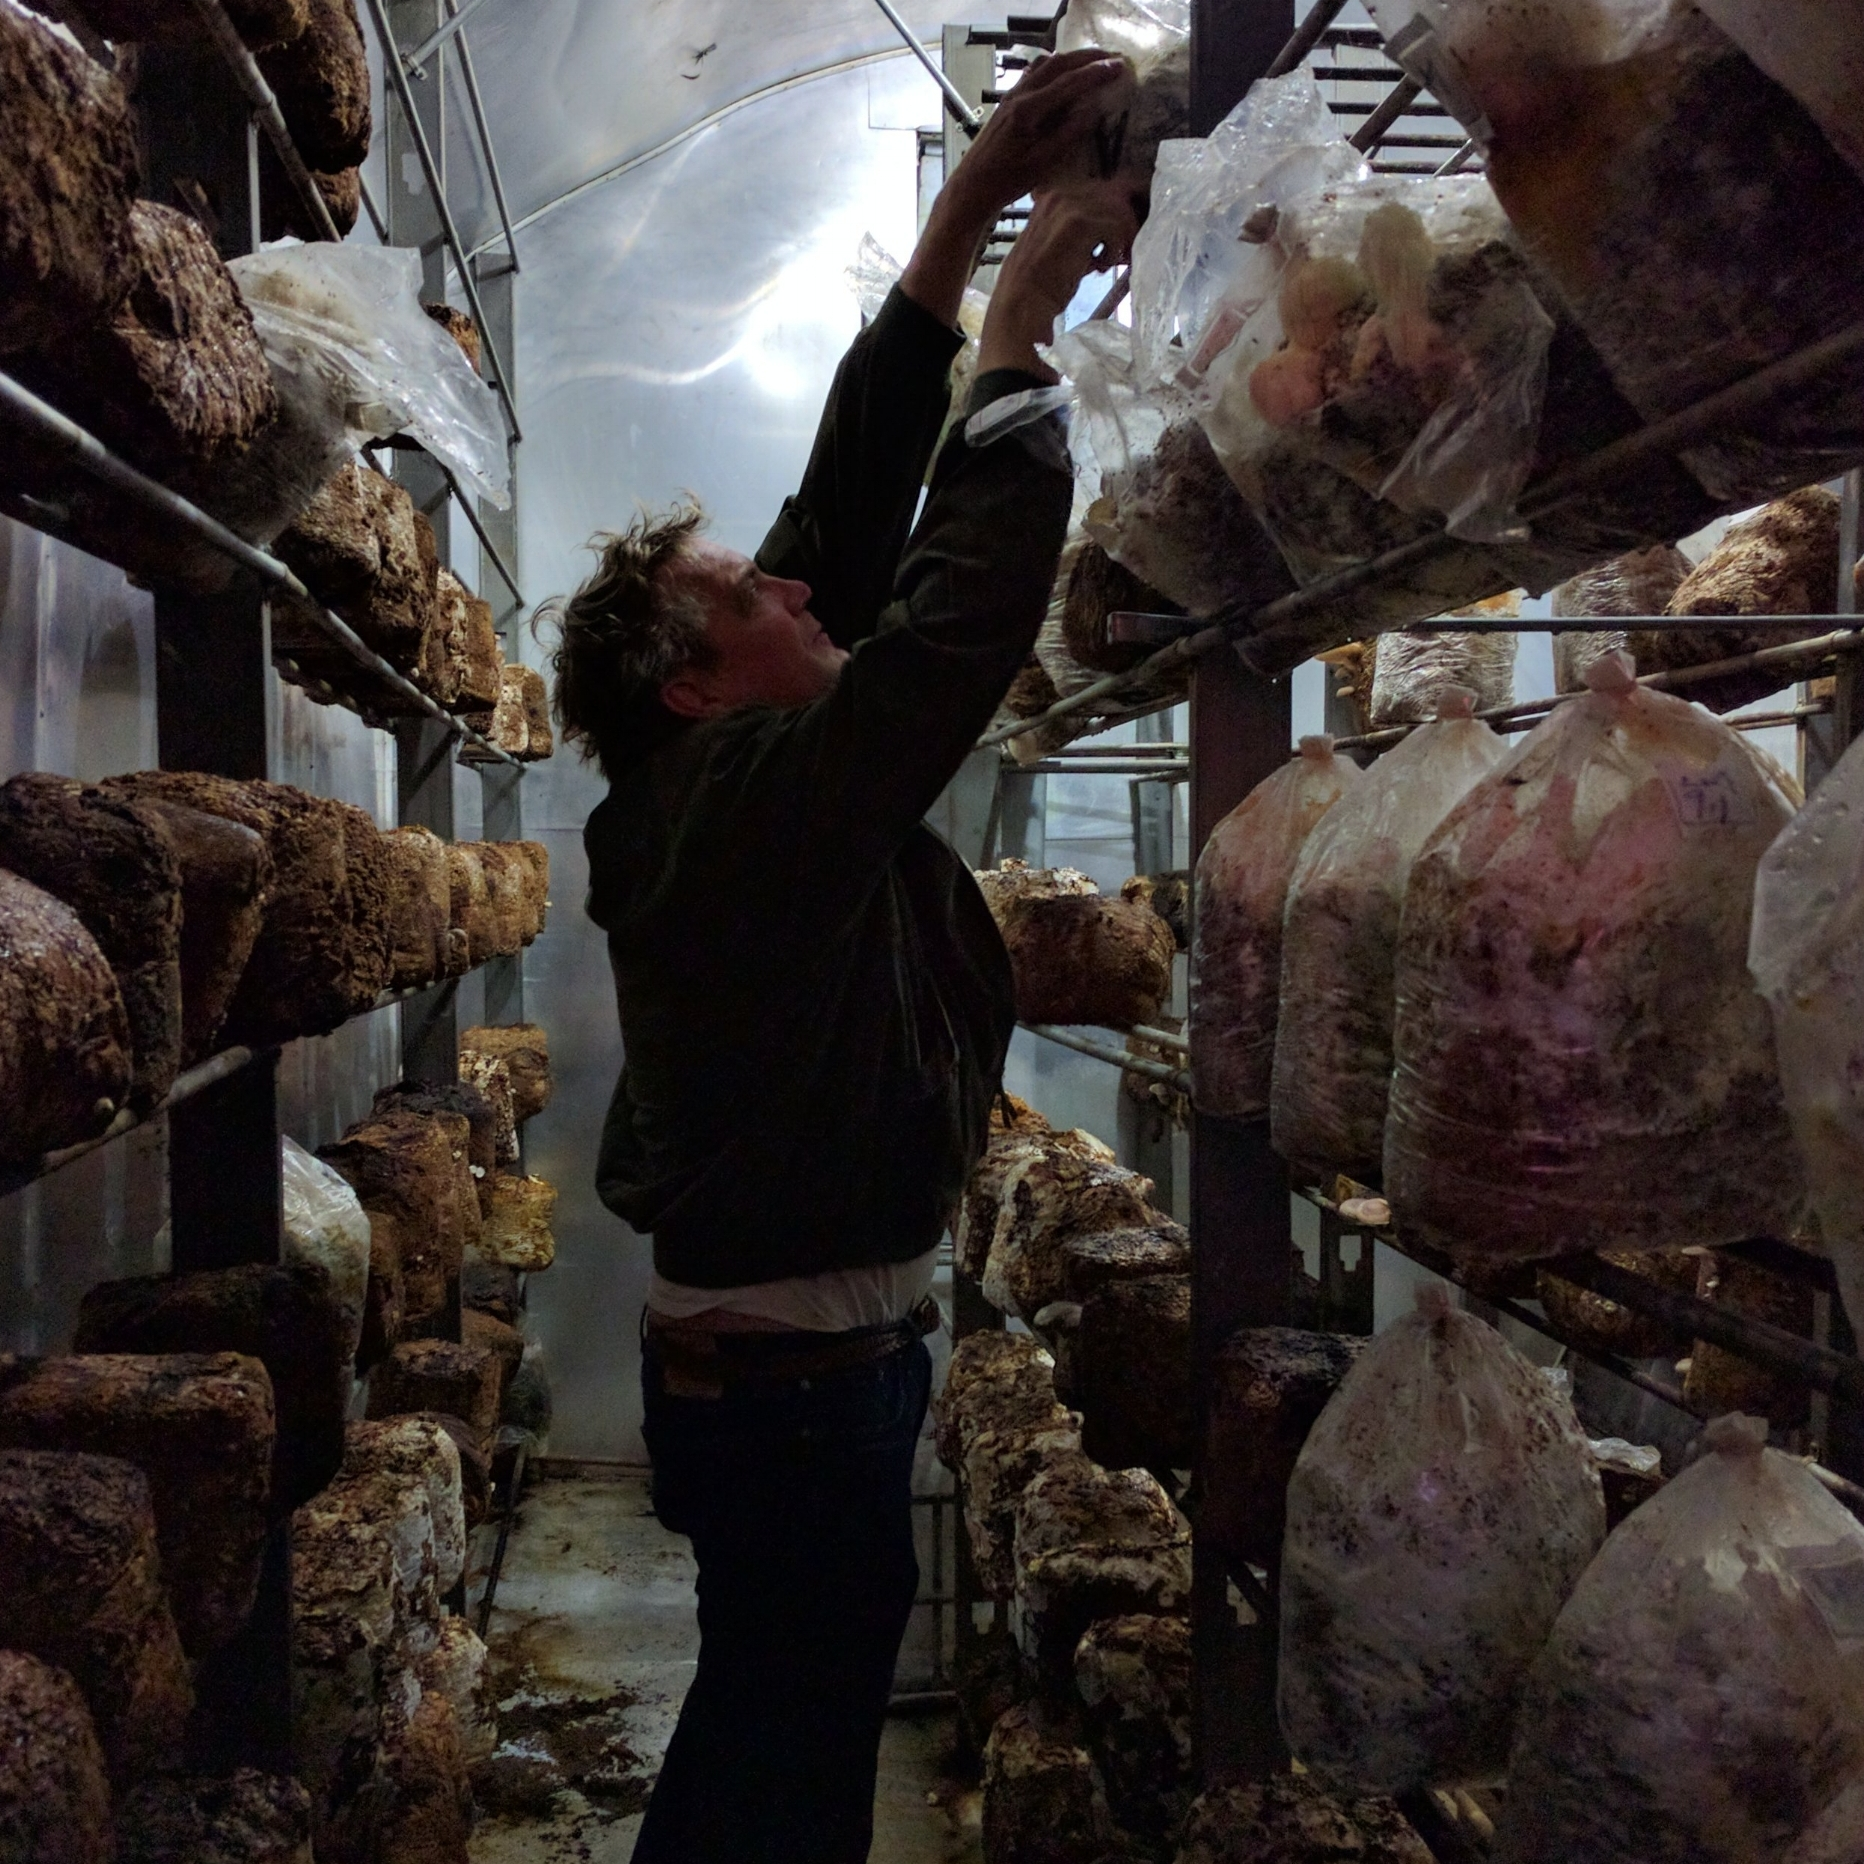 Valley City Fungi - Valley City, OH - John, a self-taught fungiculturist, grows several varieties of organic Shiitake and oyster mushrooms, along with other types of gourmet fungi. These are all grown in his incredible self-built farm, made from shipping containers.